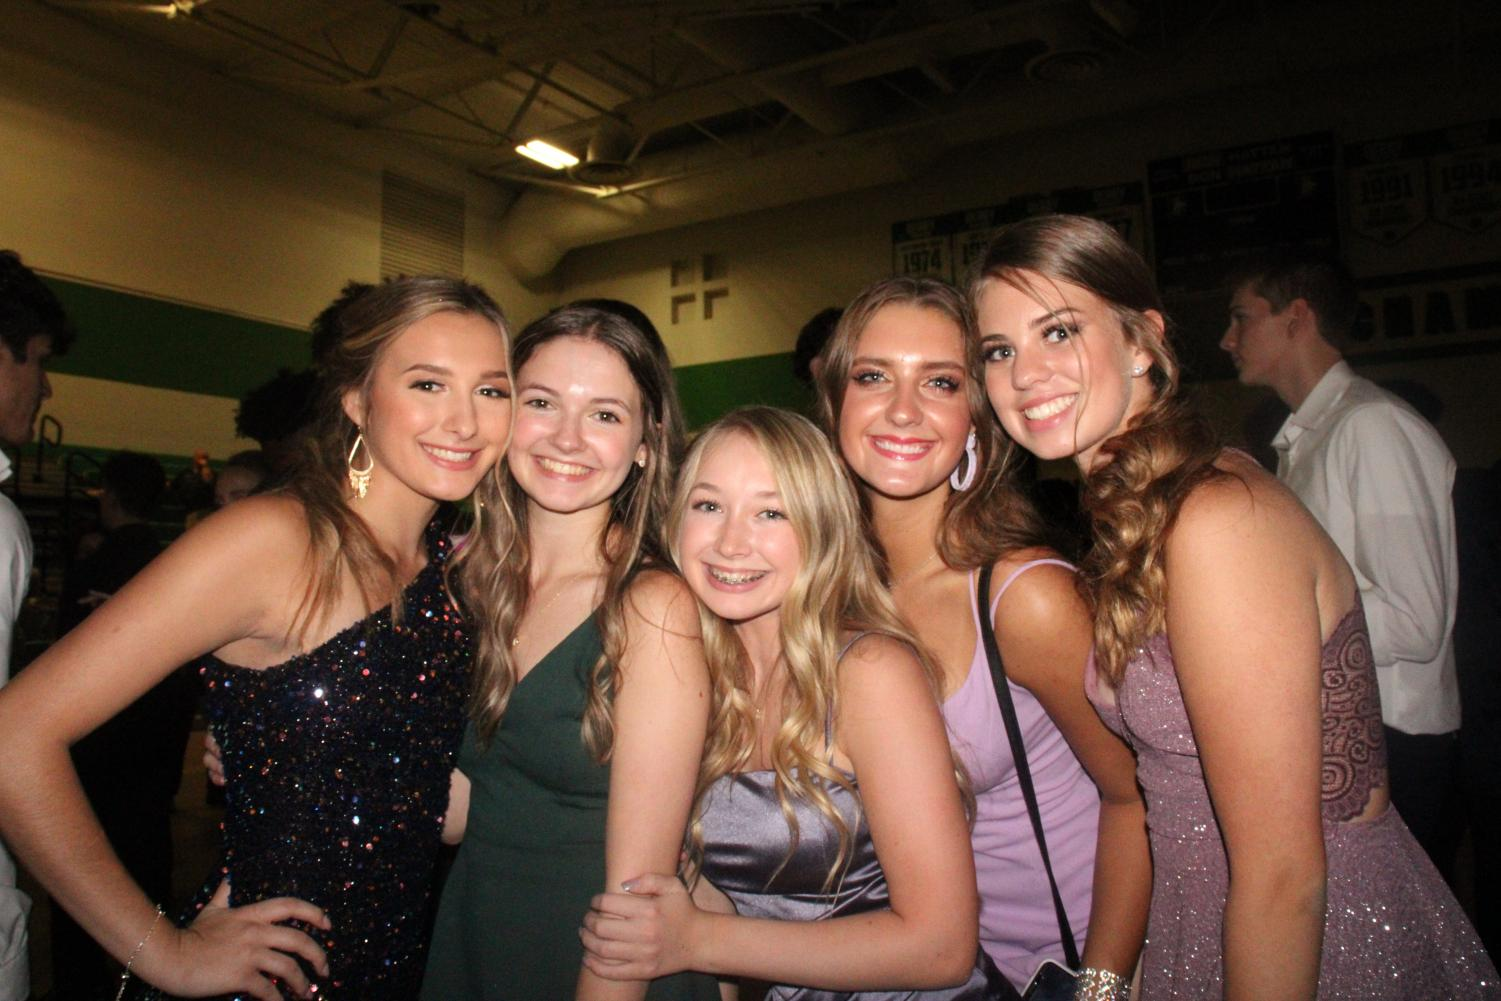 Homecoming+dance+%28photos+by+Alyssa+Lai%29